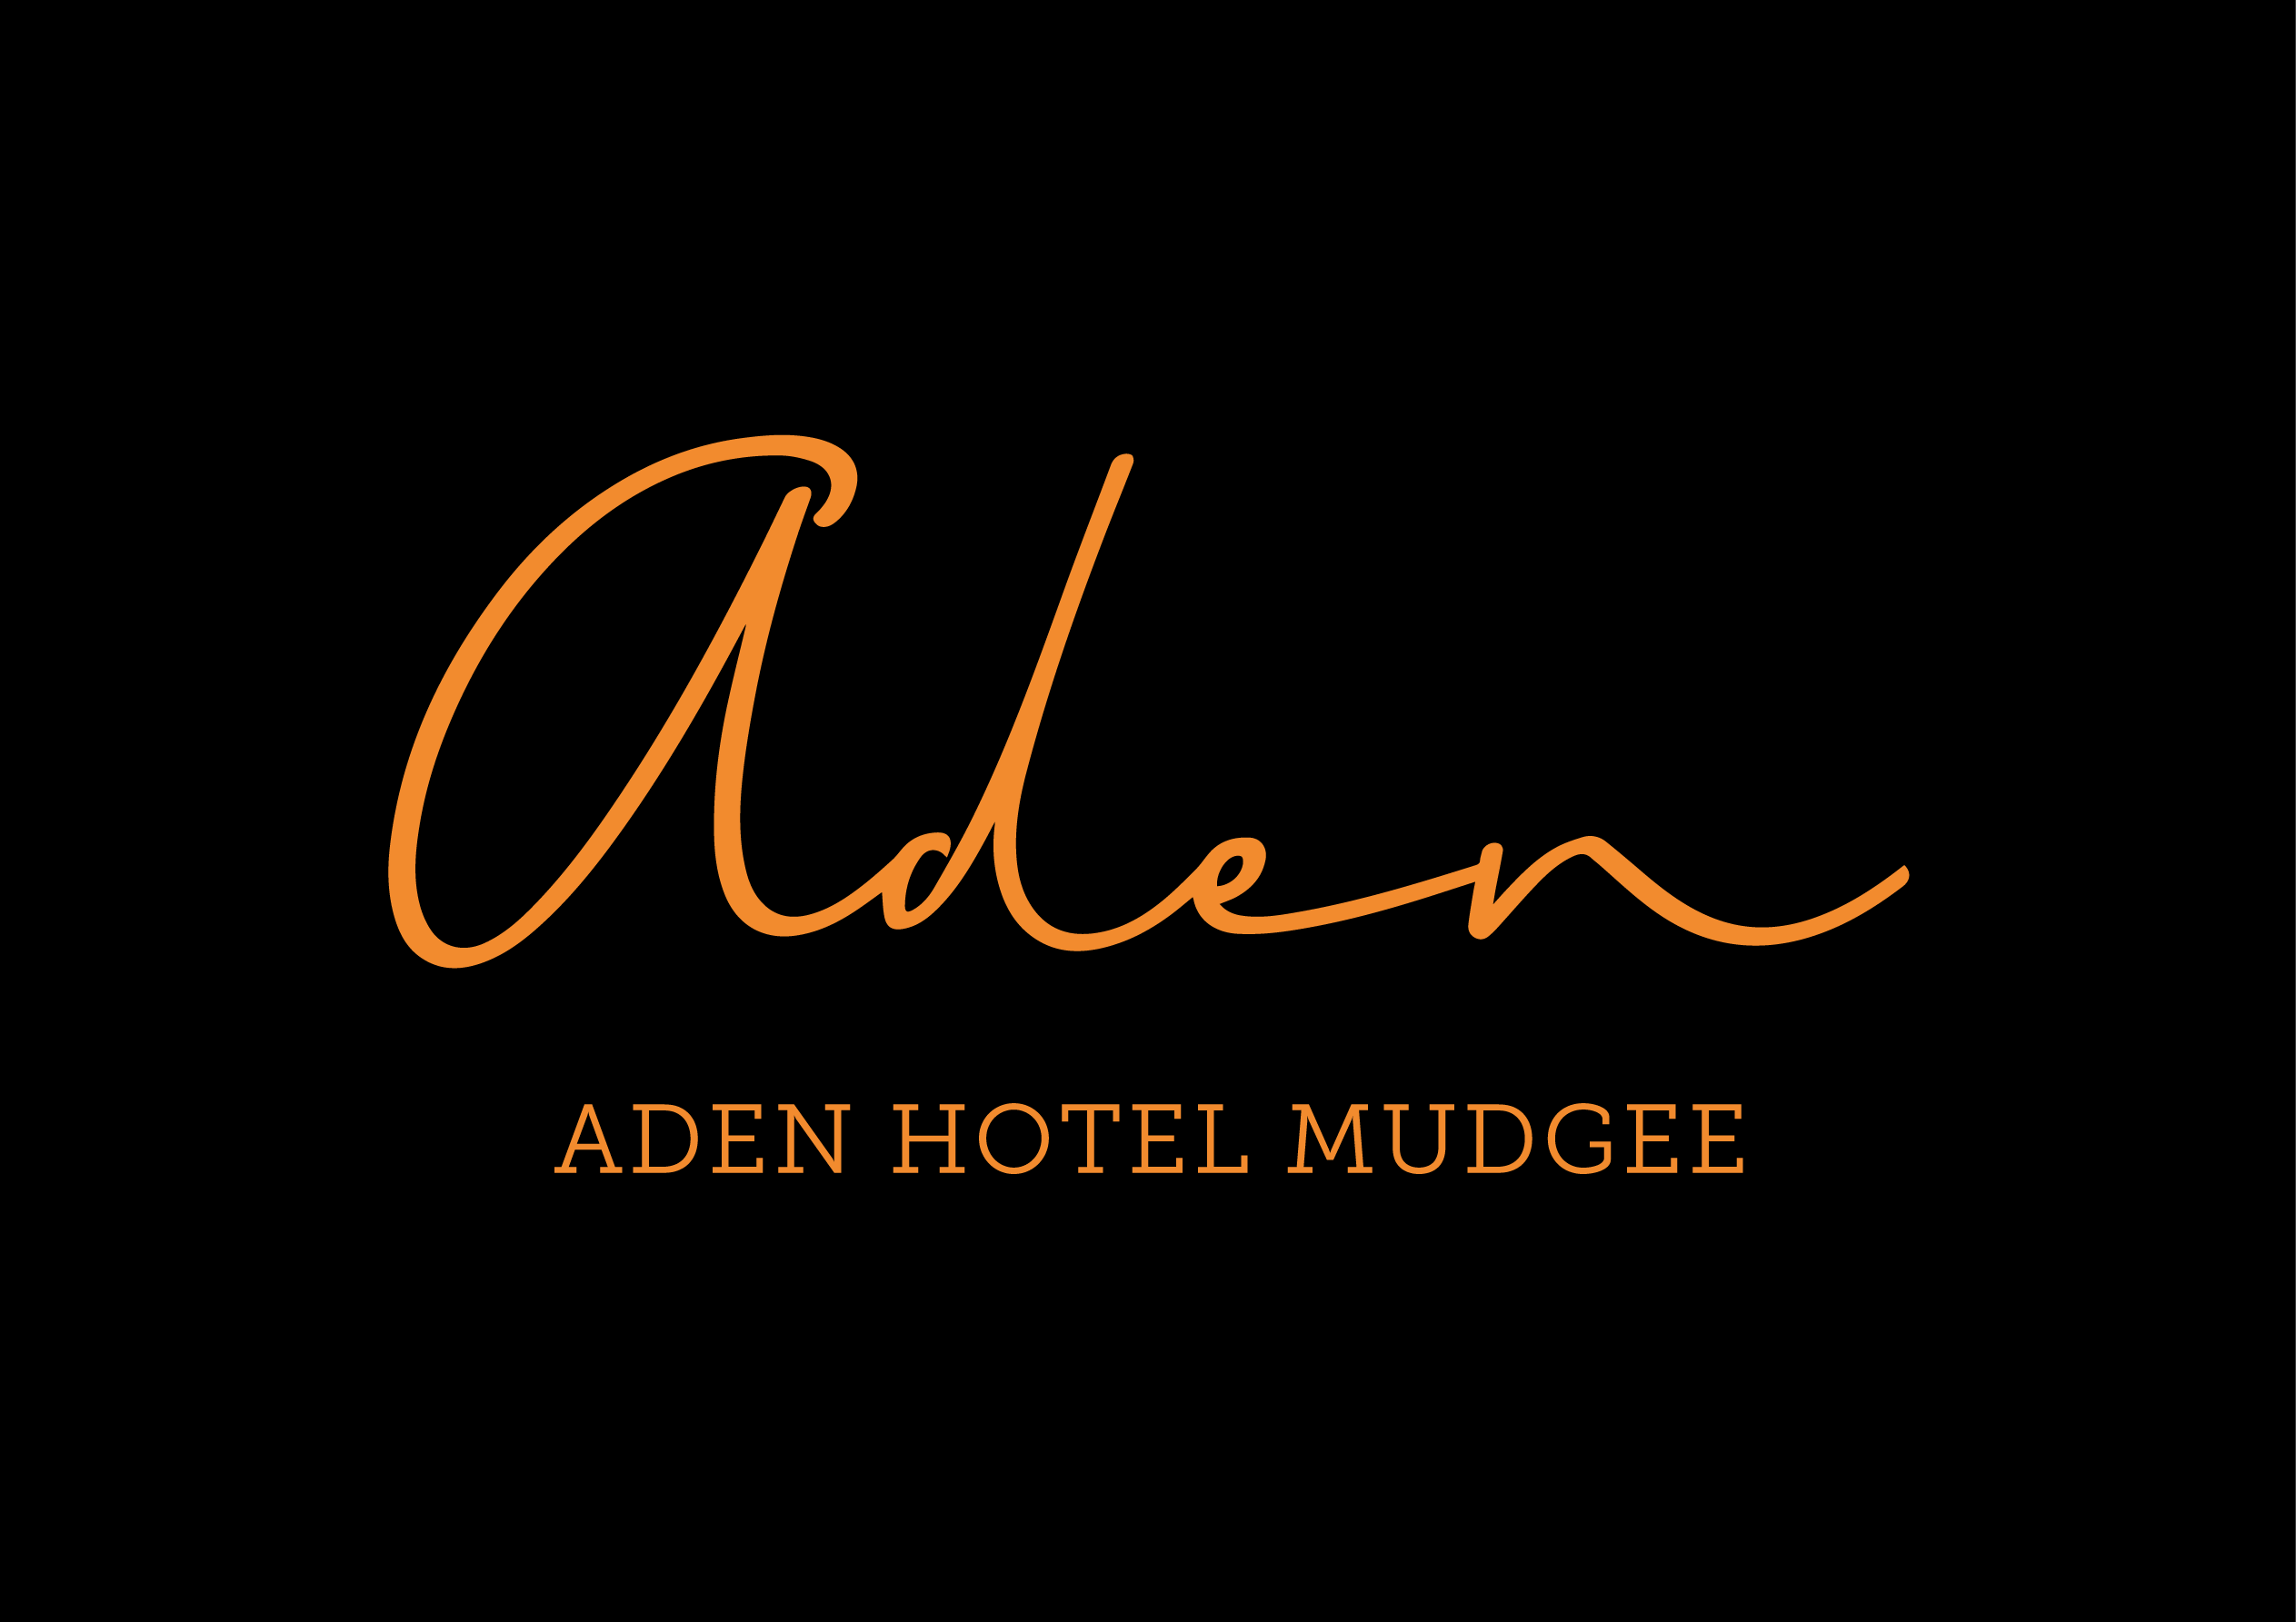 Comfort Inn Aden Hotel Mudgee - Perisher Accommodation